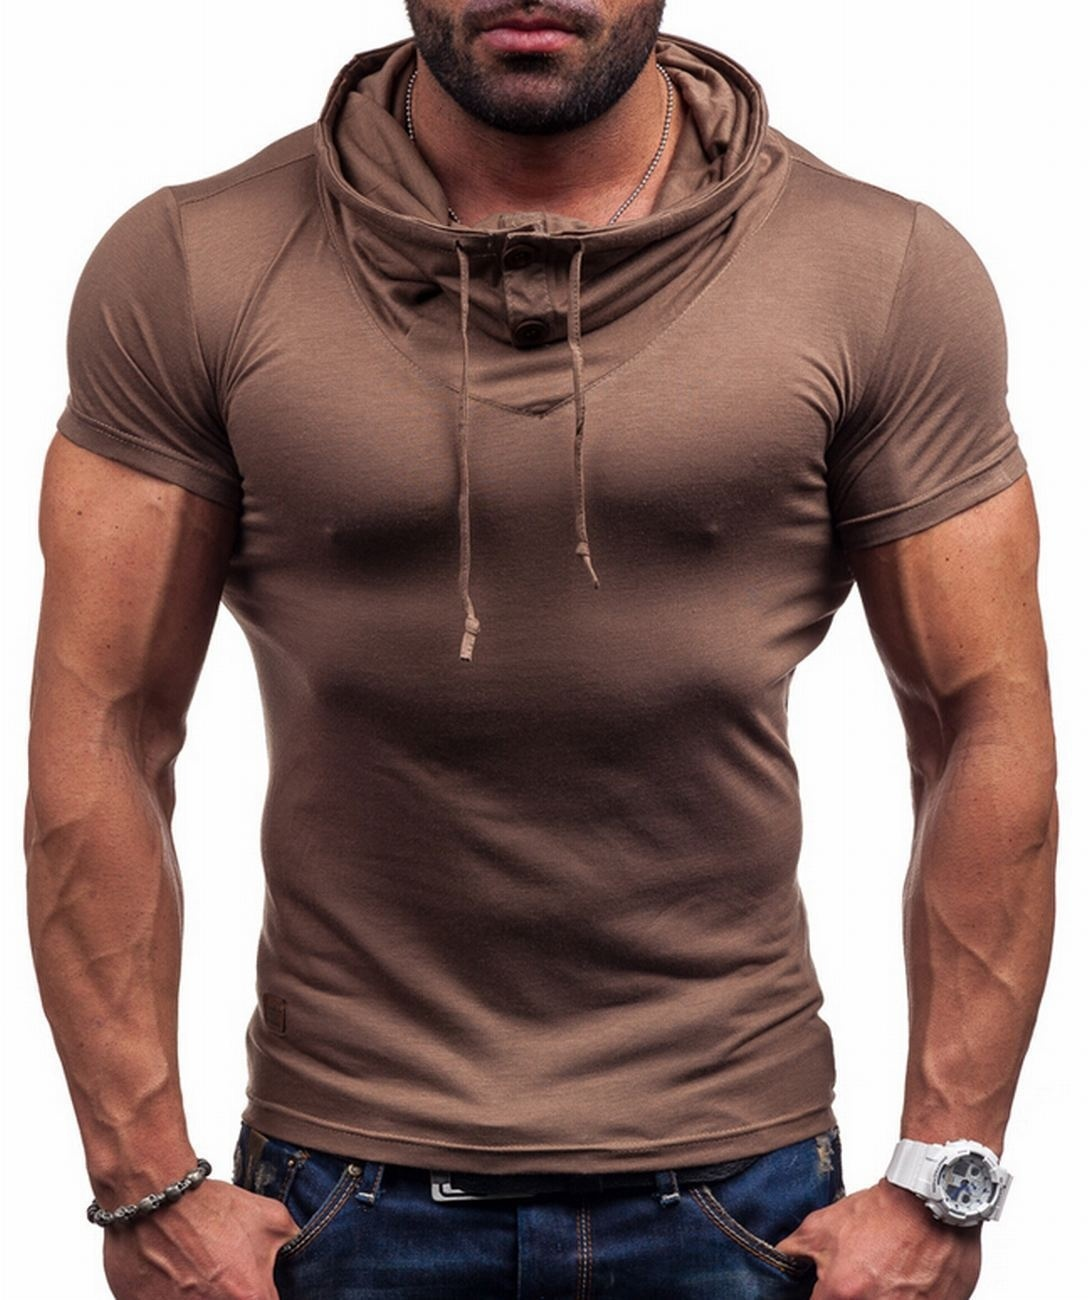 ZOGAA 2019 Fashion New Spring Summer men's Short Sleev   polo   shirt Drawstring stand Slim Fit   Polos   Casual Muscle Tee Fashion Tops